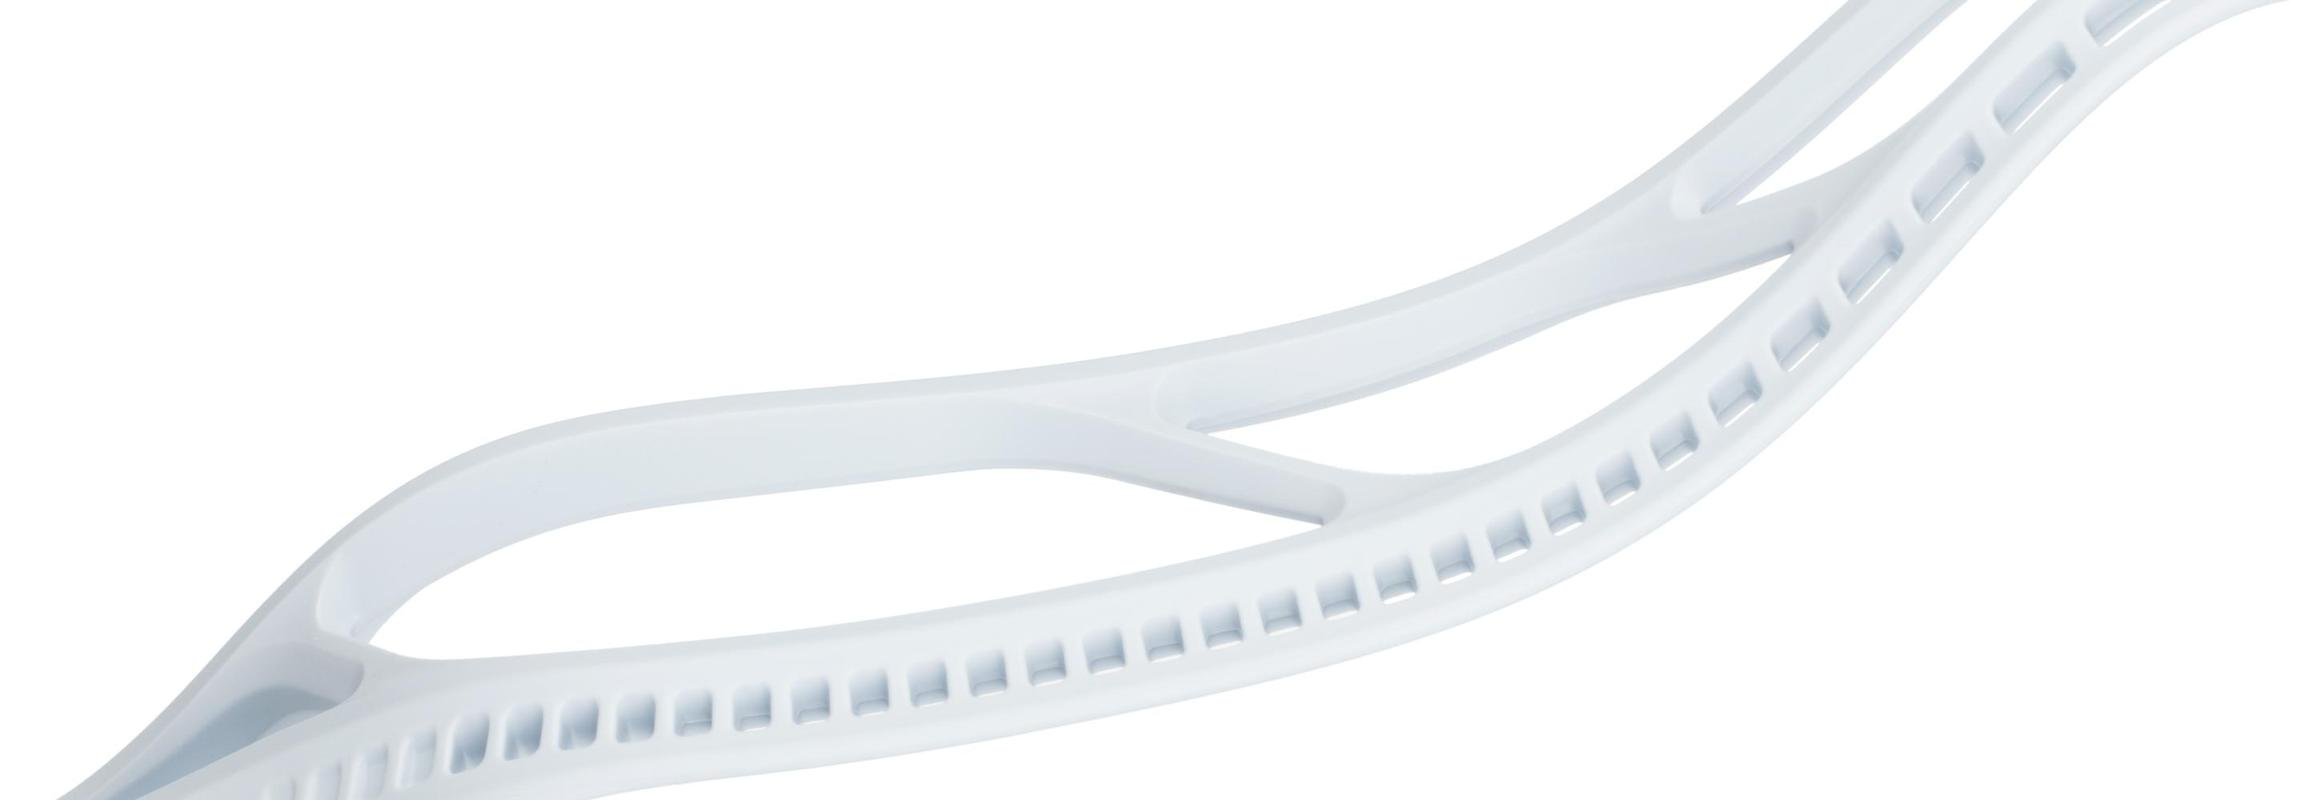 StringKing Mark 2F Lacrosse Head Feature White Unstrung Better Materials